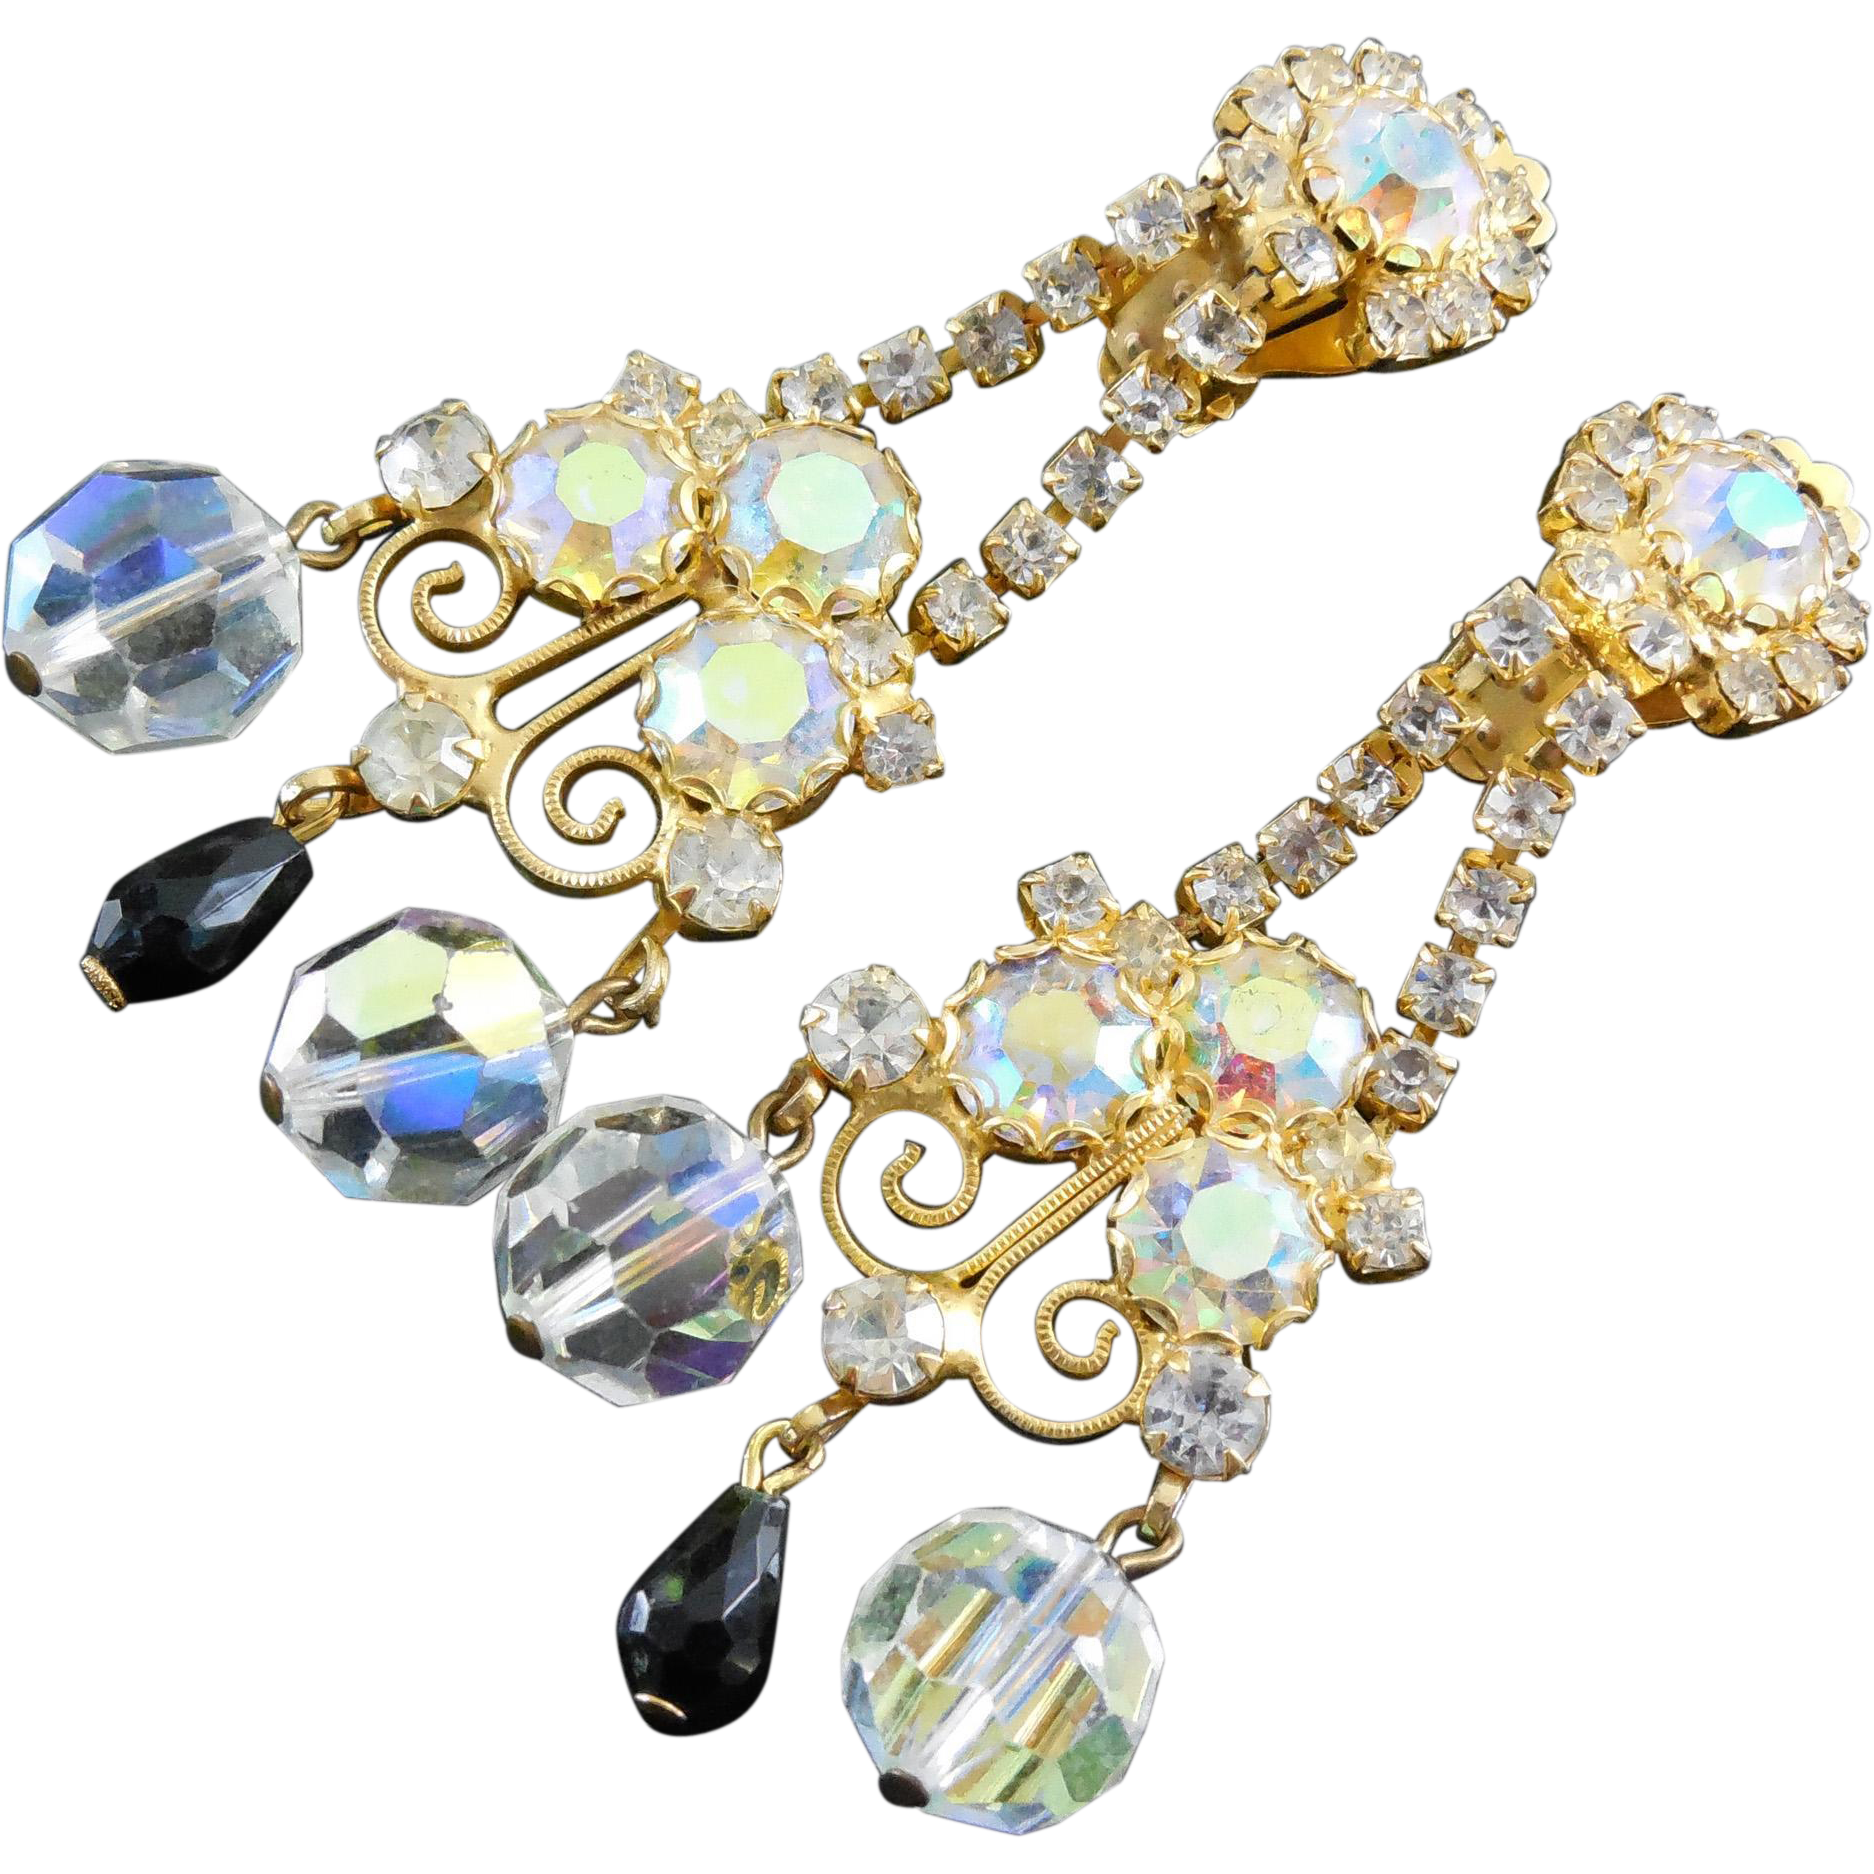 "Fabulous Flashy Long Vintage Crystal Earrings 3"" Long Shoulder Dusters - AB Crystals"